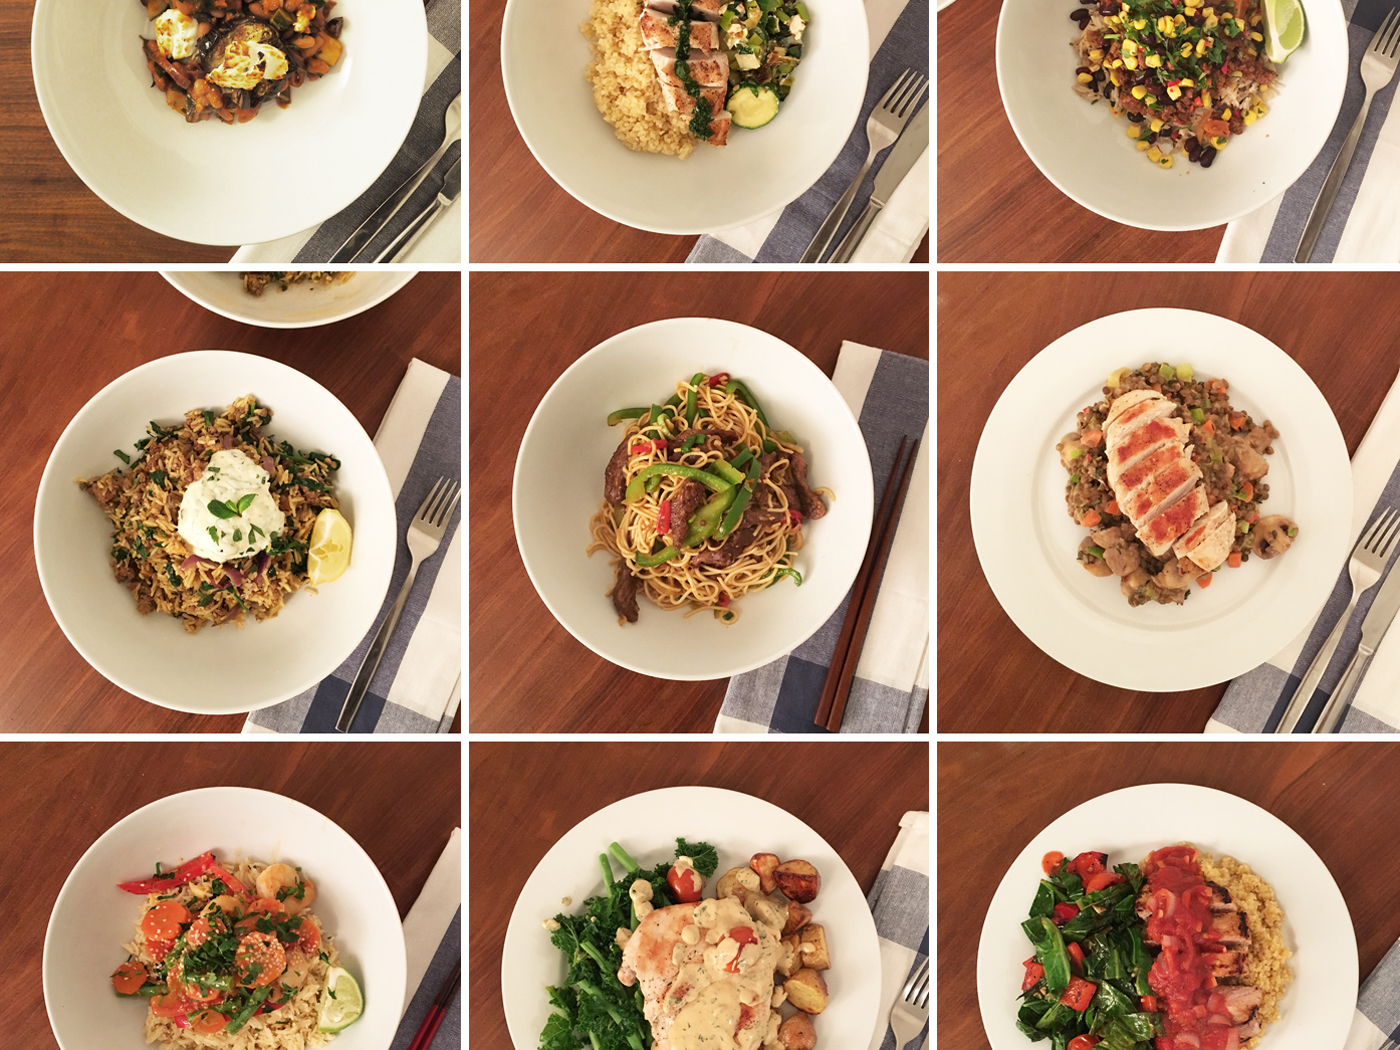 Price Duty Free Hellofresh Meal Kit Delivery Service